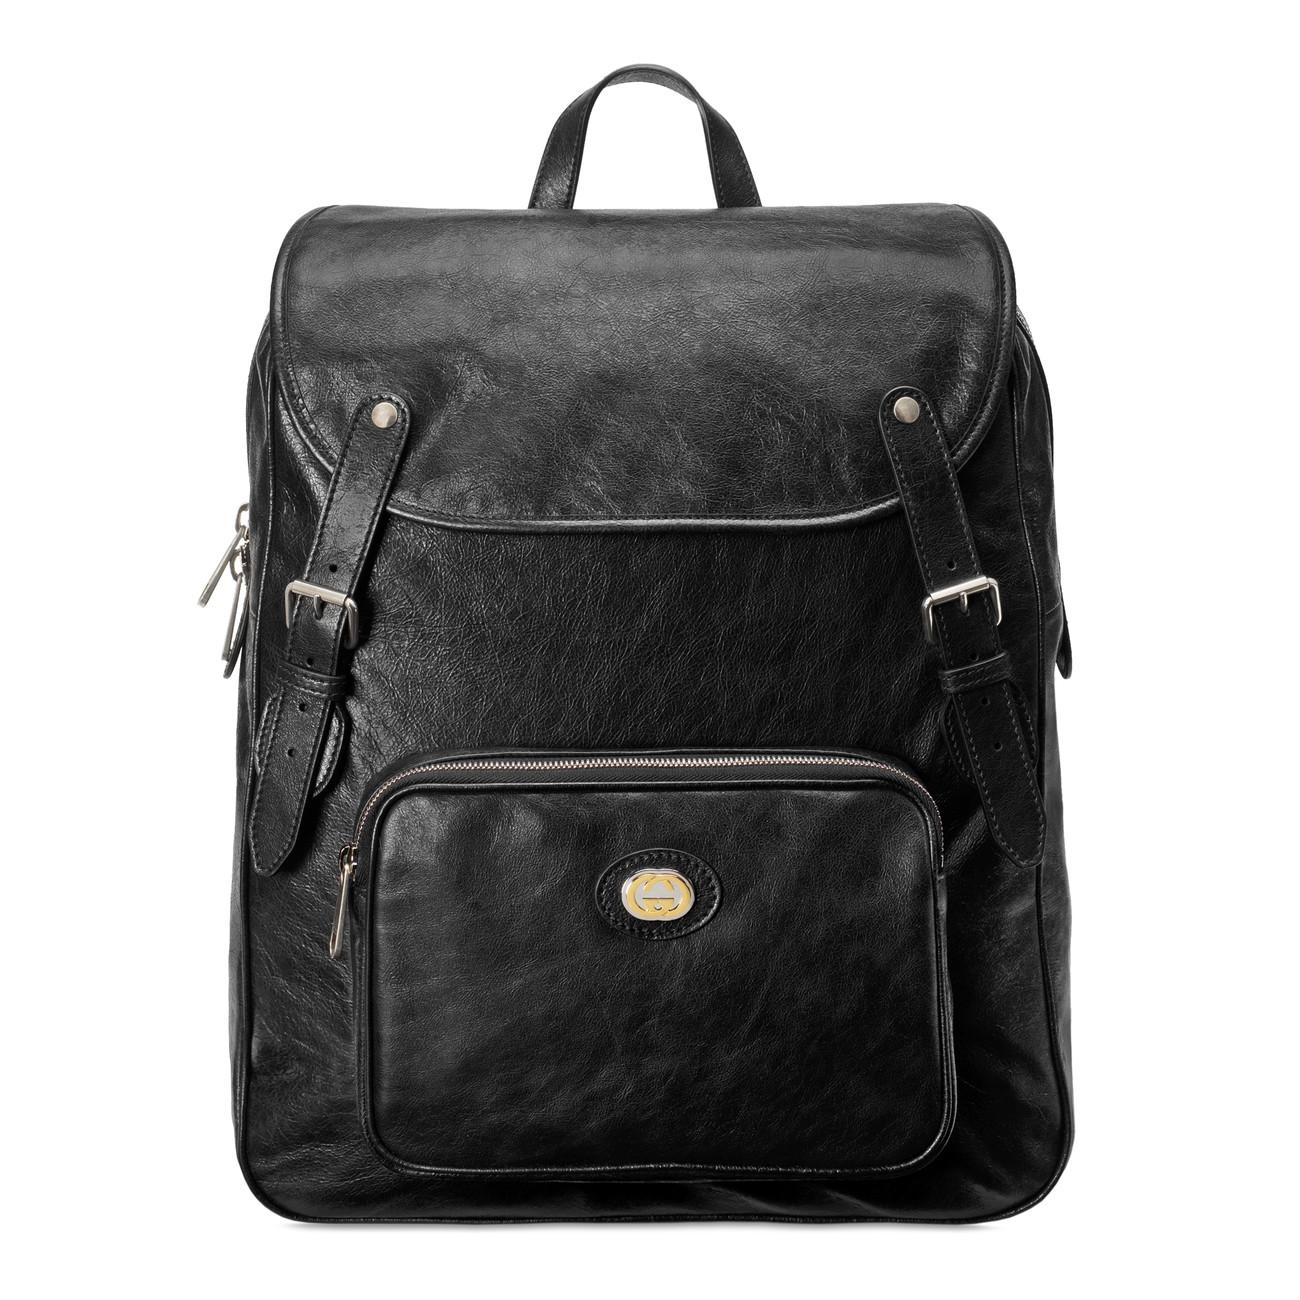 742b561204ce Lyst - Gucci Medium Soft Leather Backpack in Black for Men